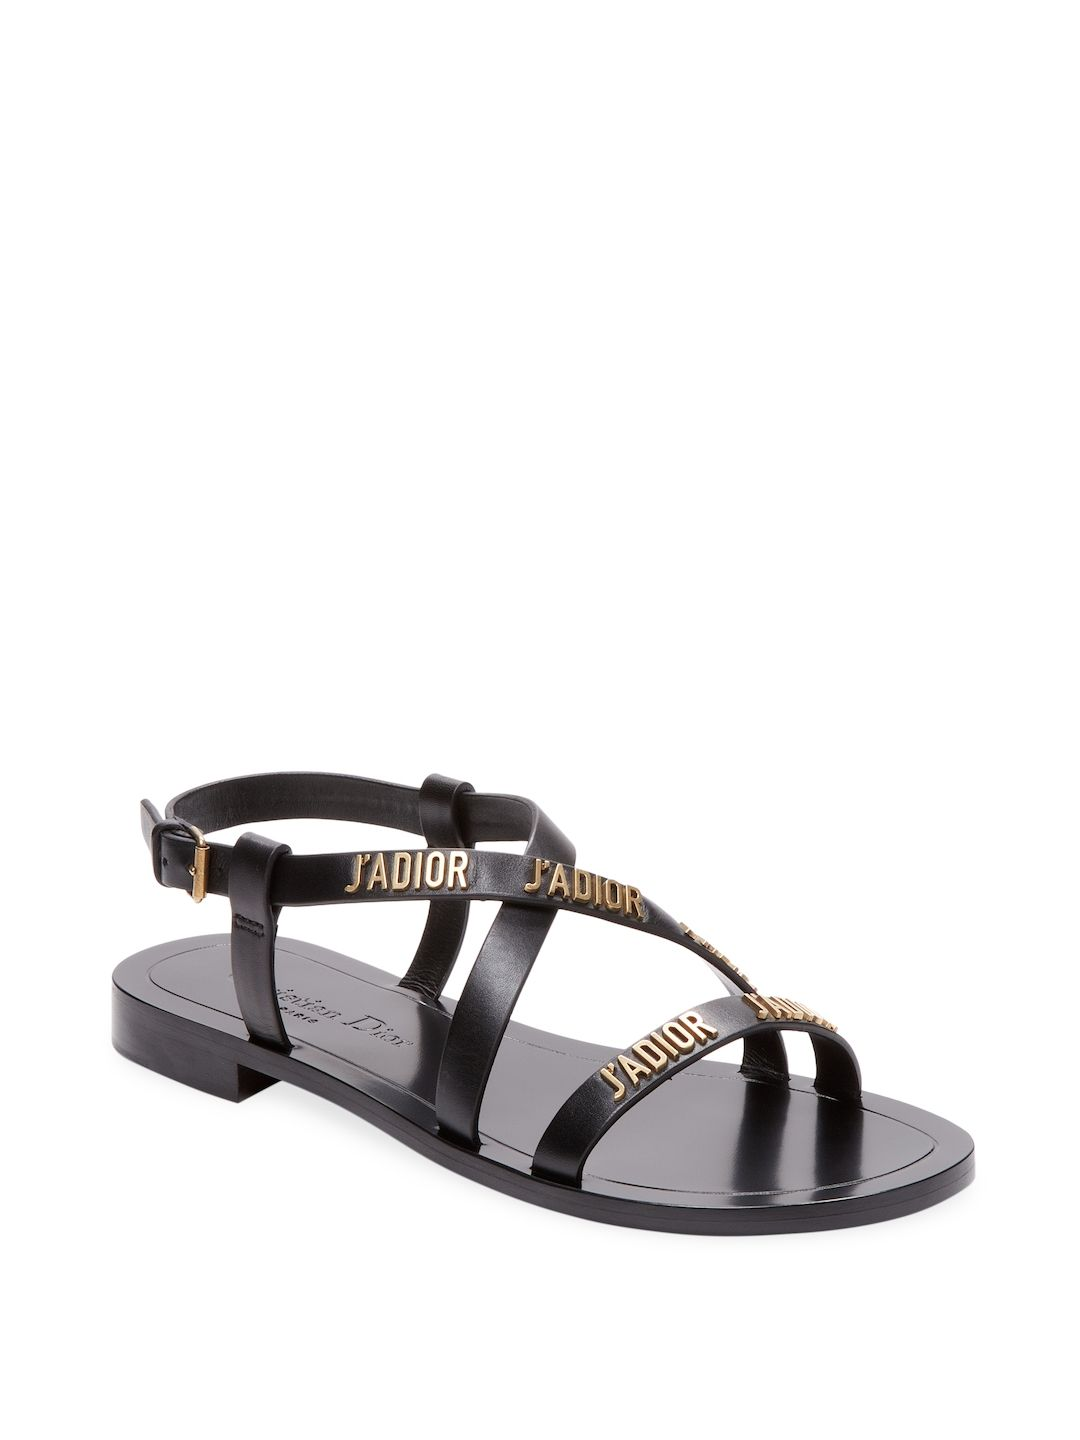 eb91c45127b01 DIOR WOMEN S LEATHER FLAT SANDAL - BLACK